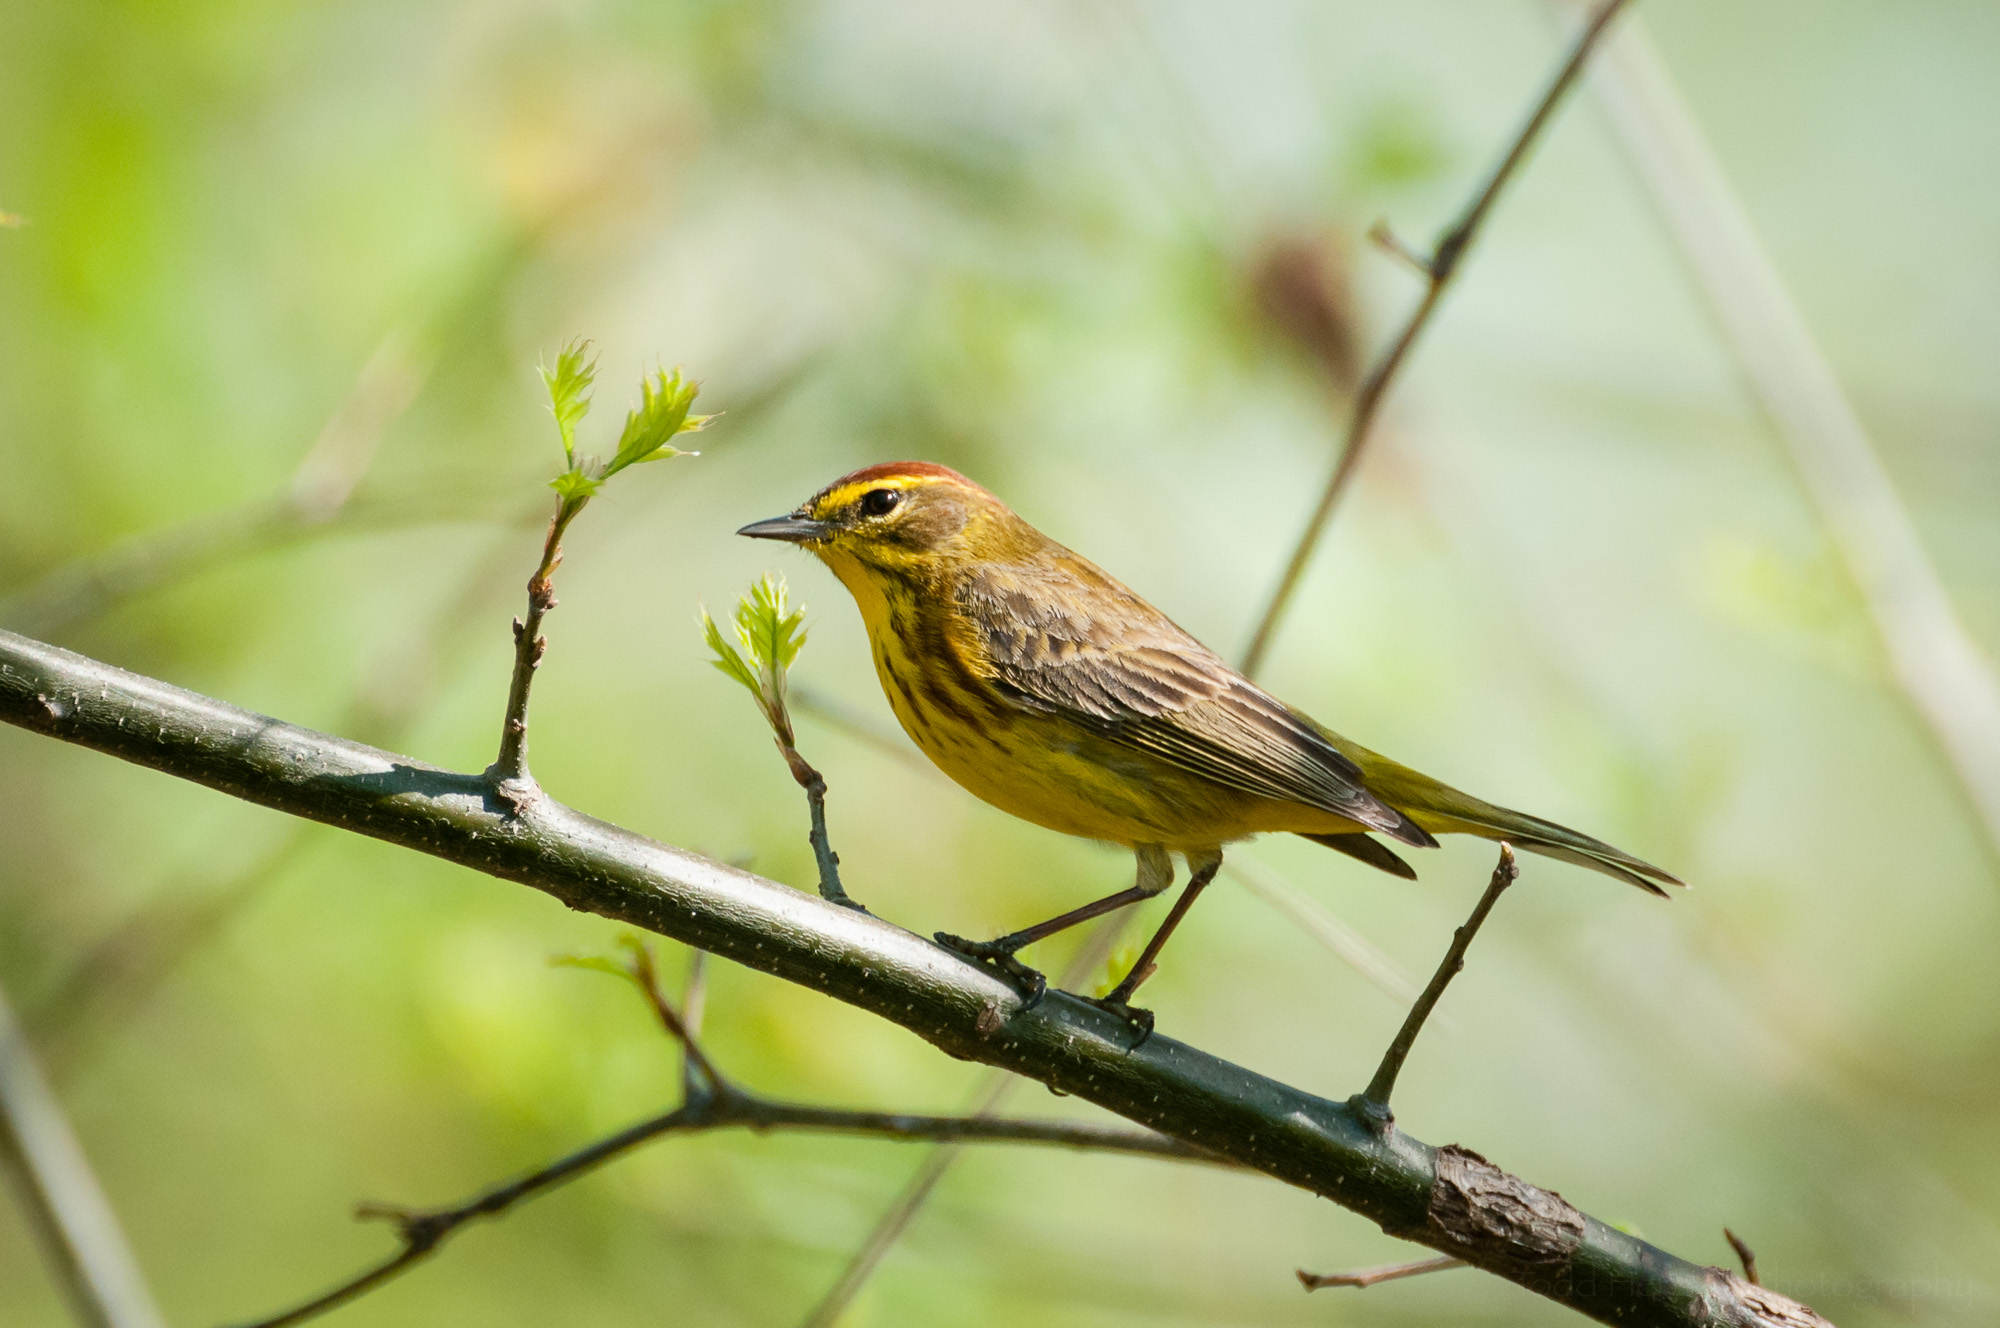 A side view of a Palm Warbler